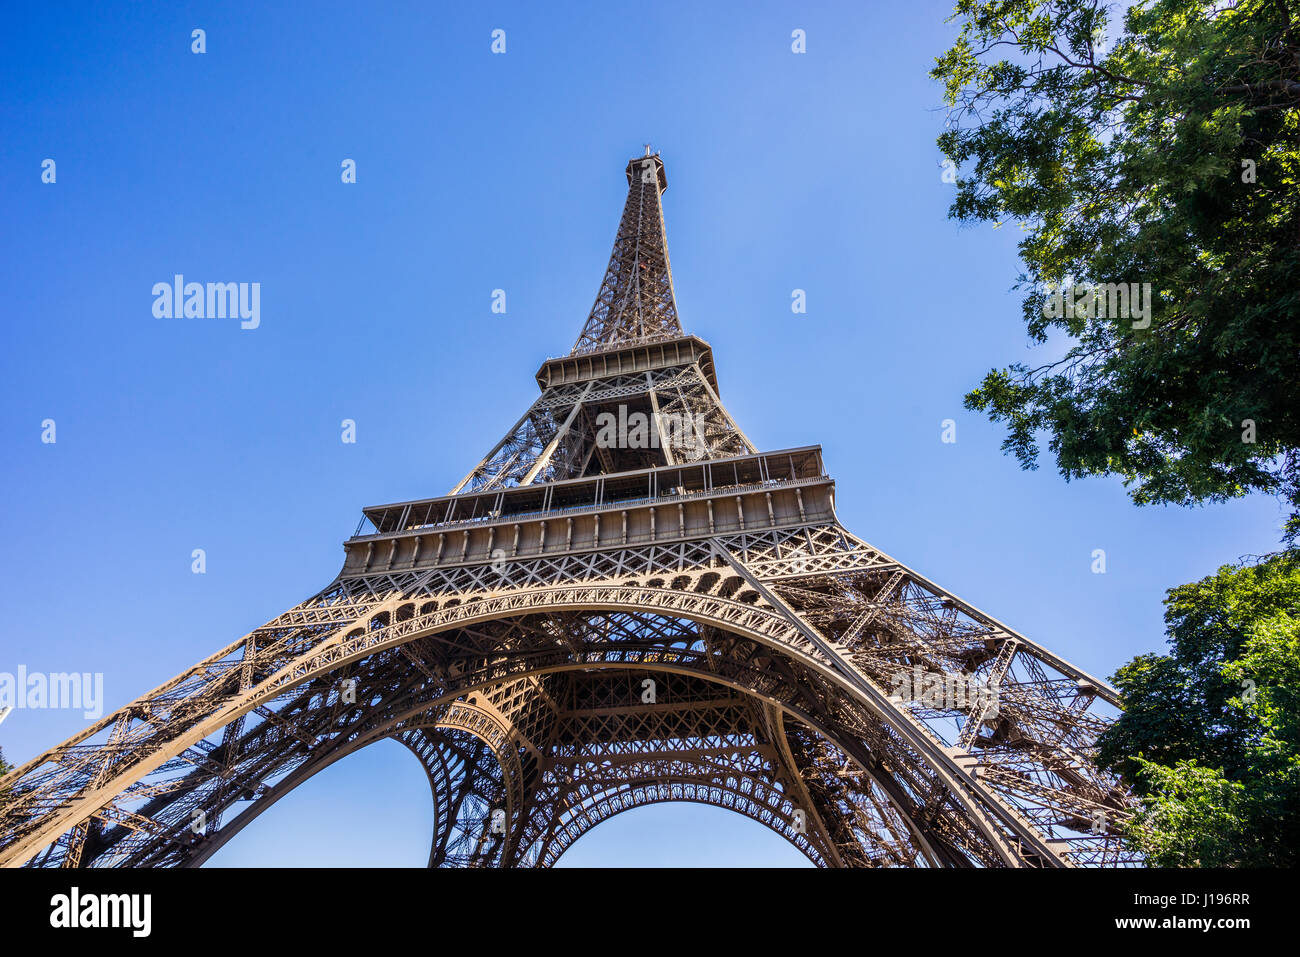 France, Paris, mole's eye view of the Eiffel Tower - Stock Image